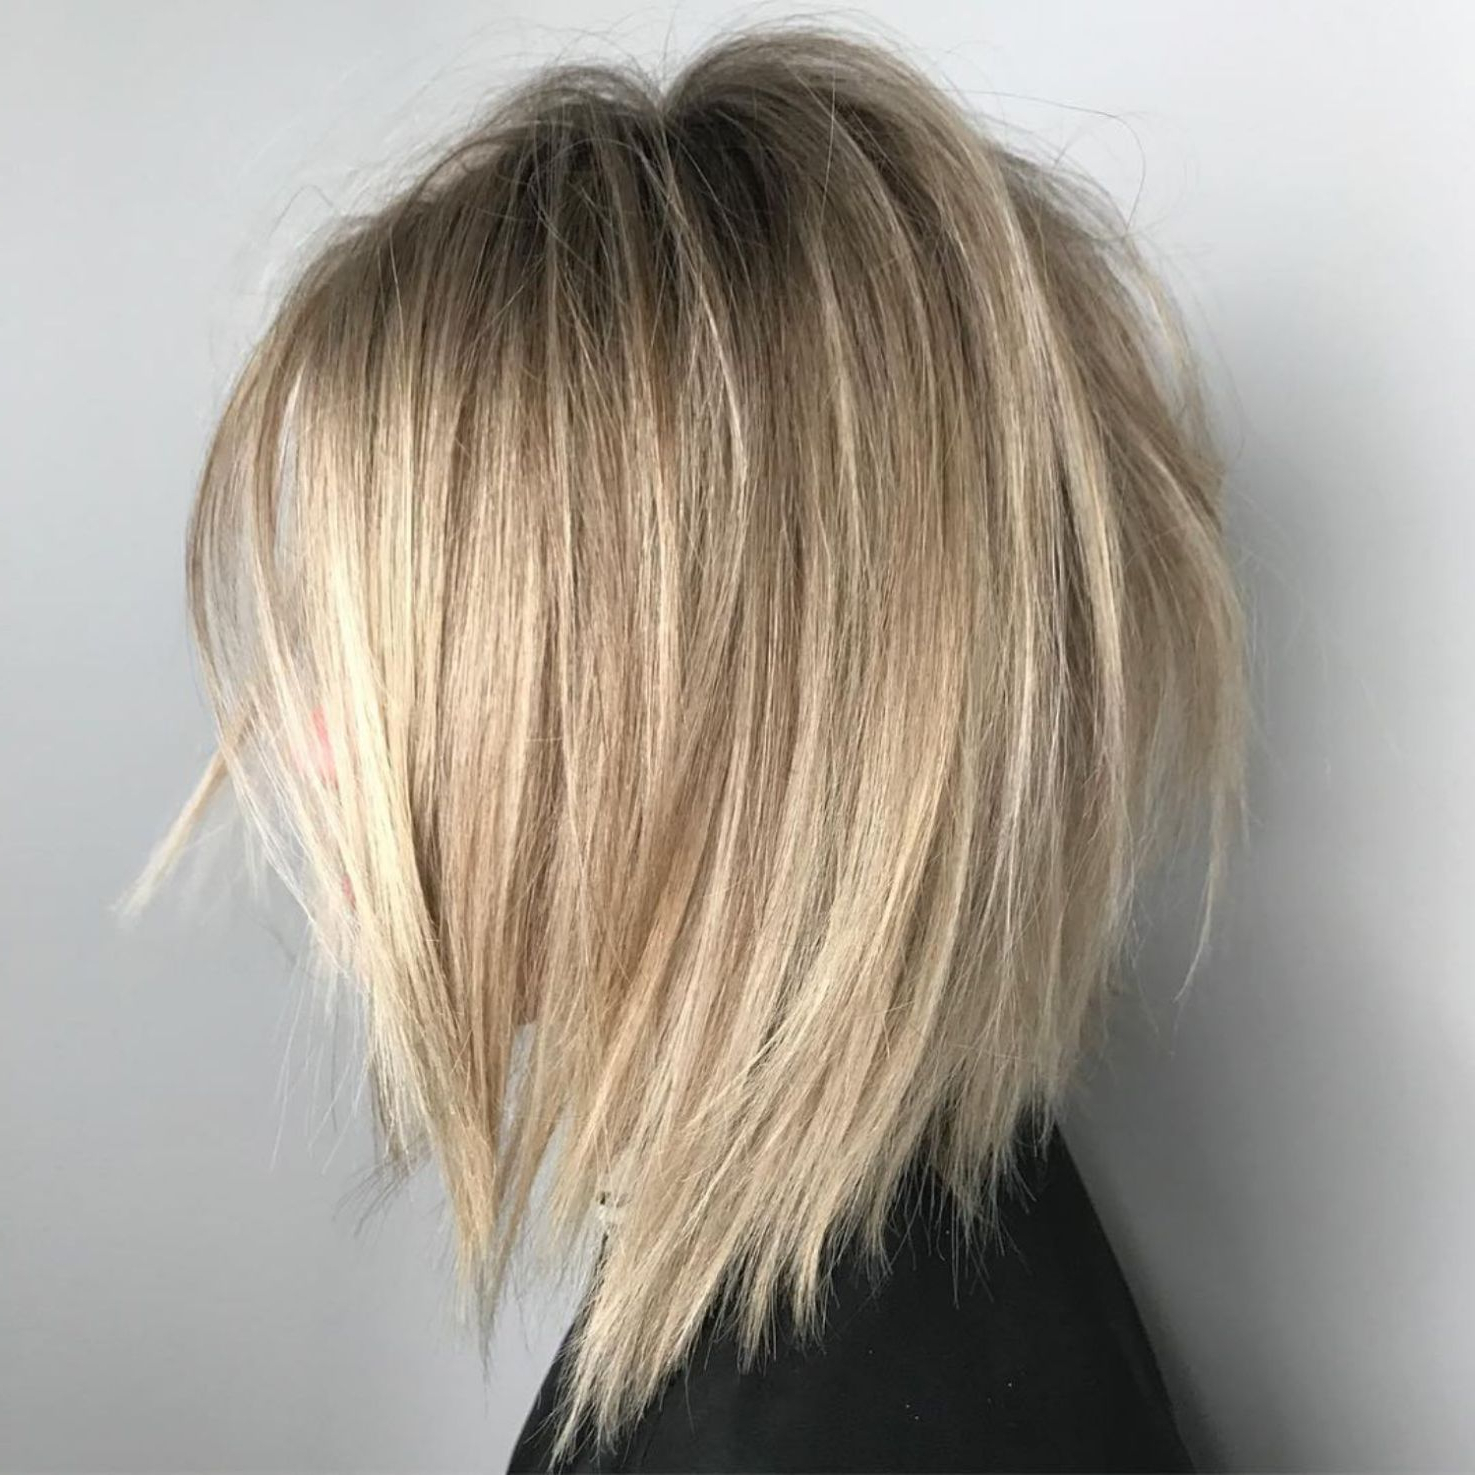 Pin On Hair Pertaining To Choppy Ash Blonde Bob Hairstyles (Gallery 10 of 20)